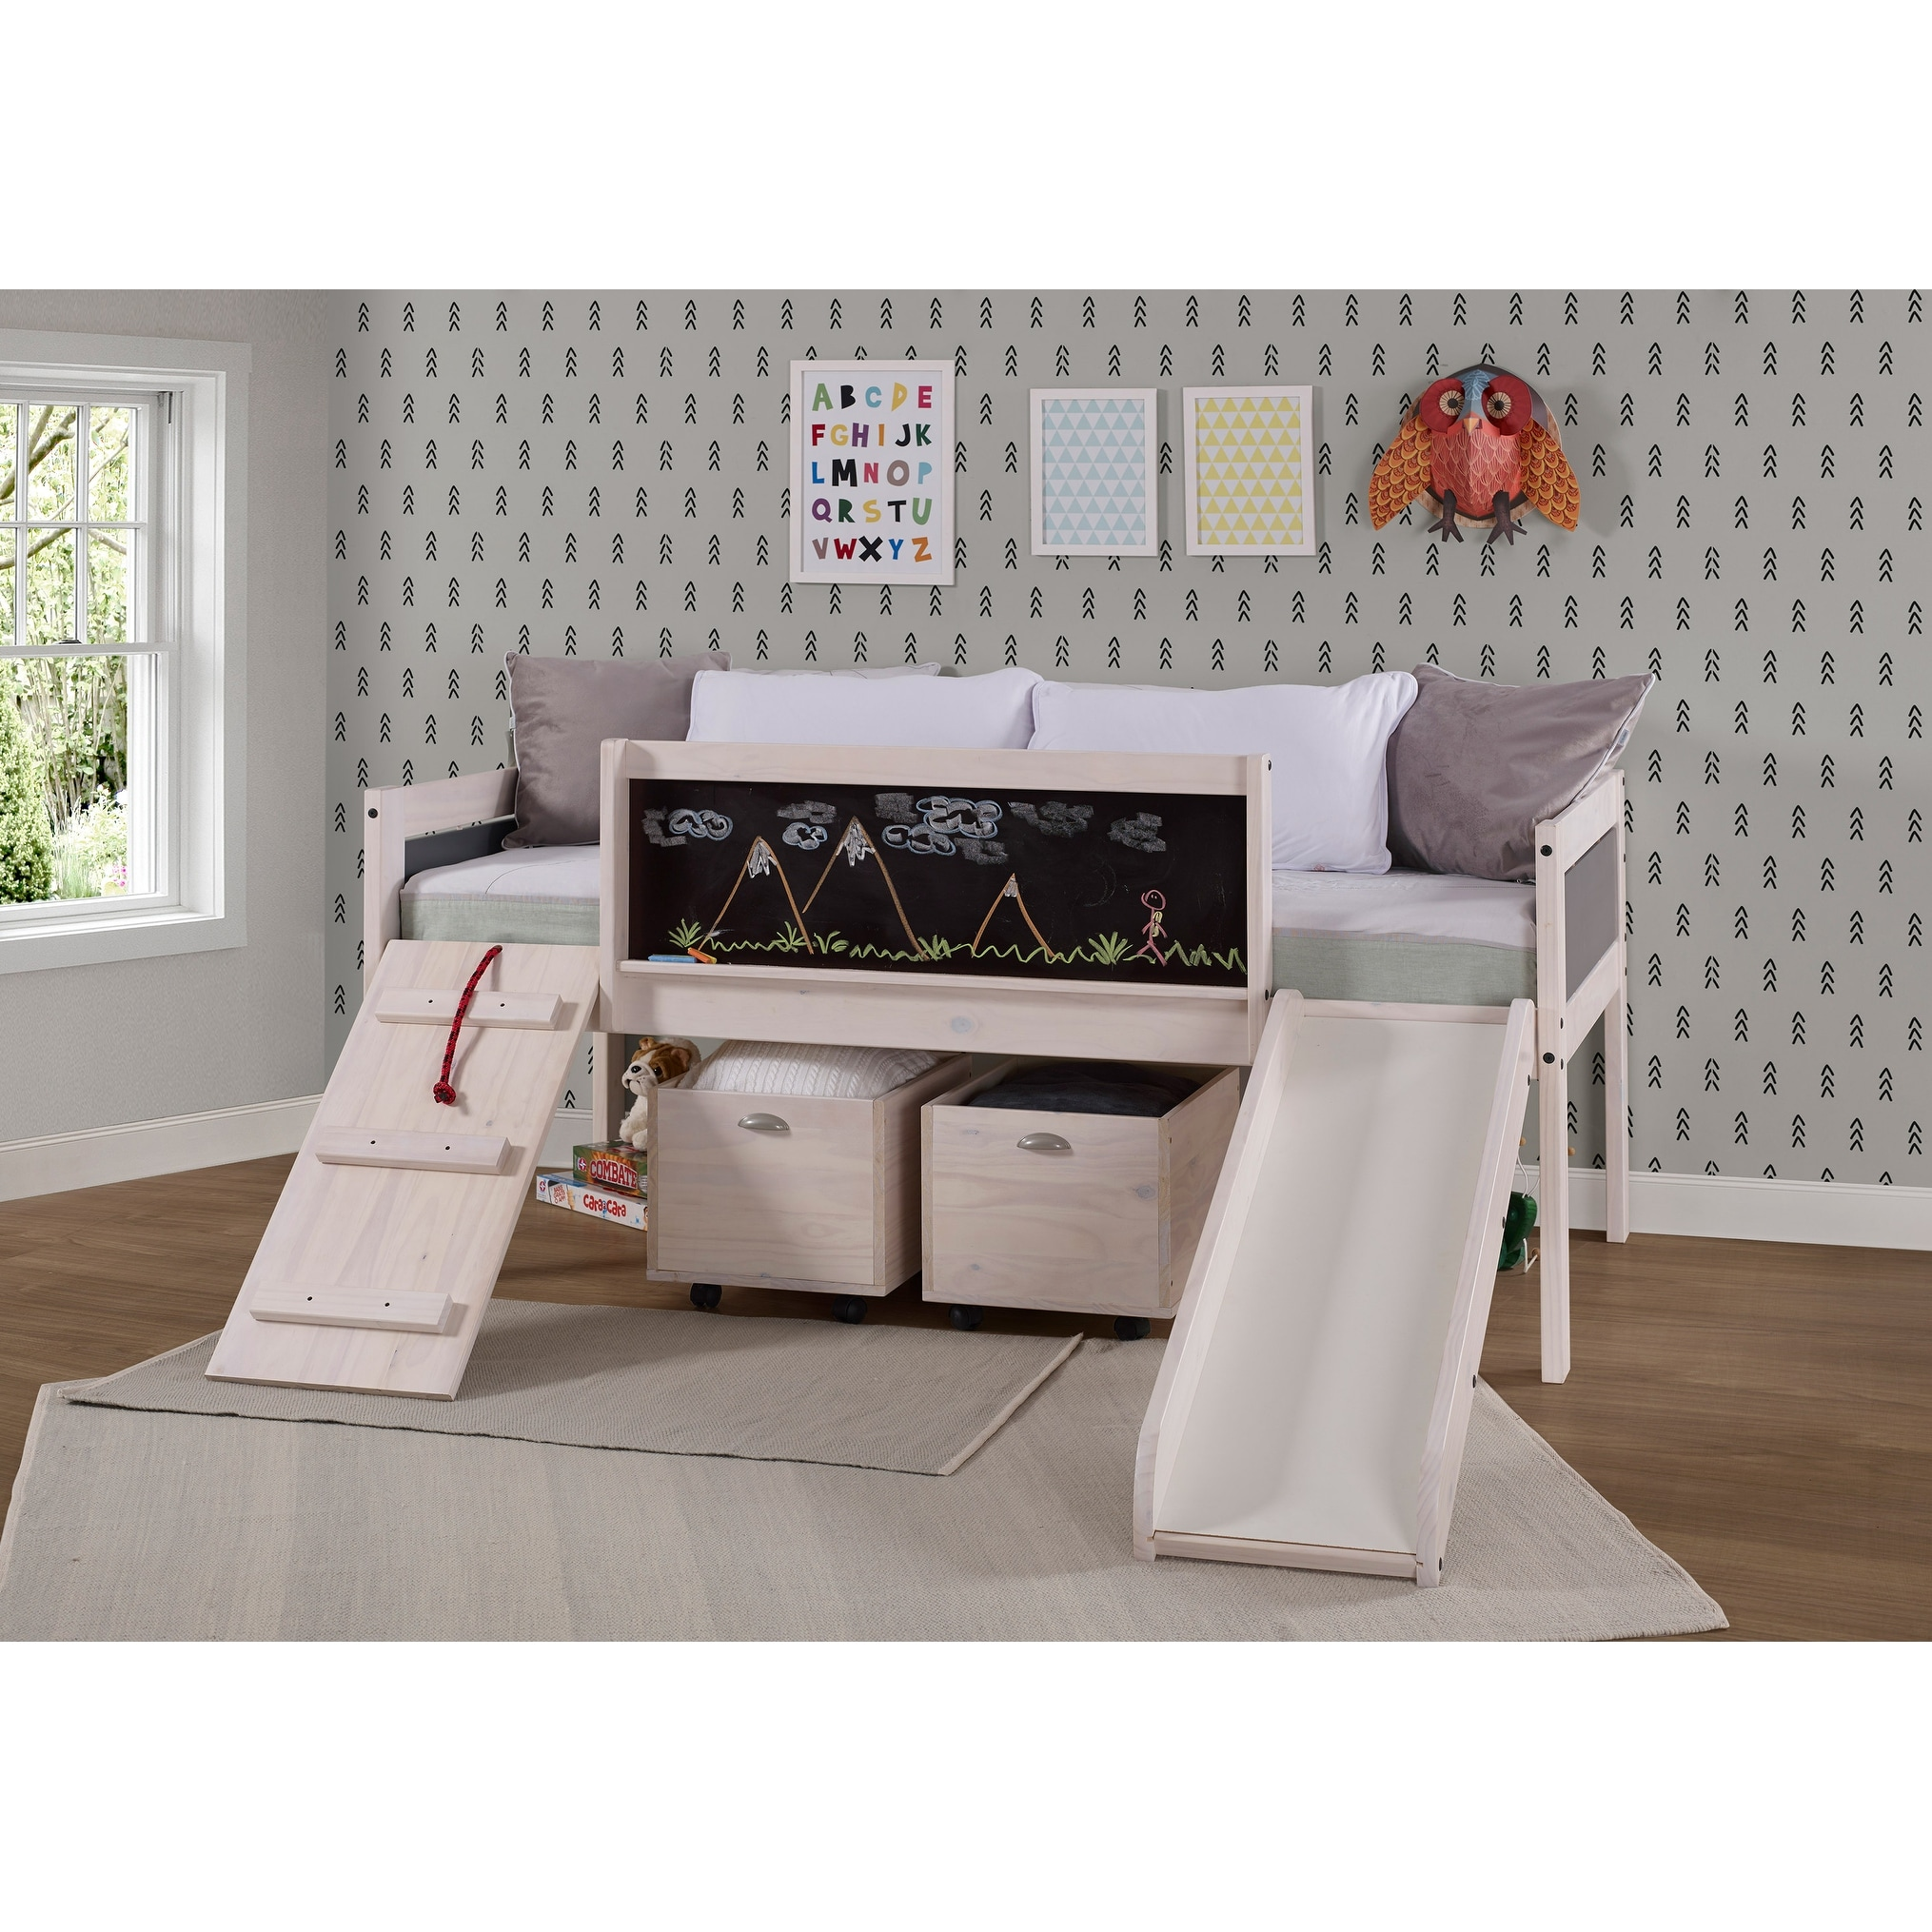 Picture of: Taylor Olive Gardenia White Wash Twin Low Loft Bed On Sale Overstock 28167494 Twin Loft Bed Only